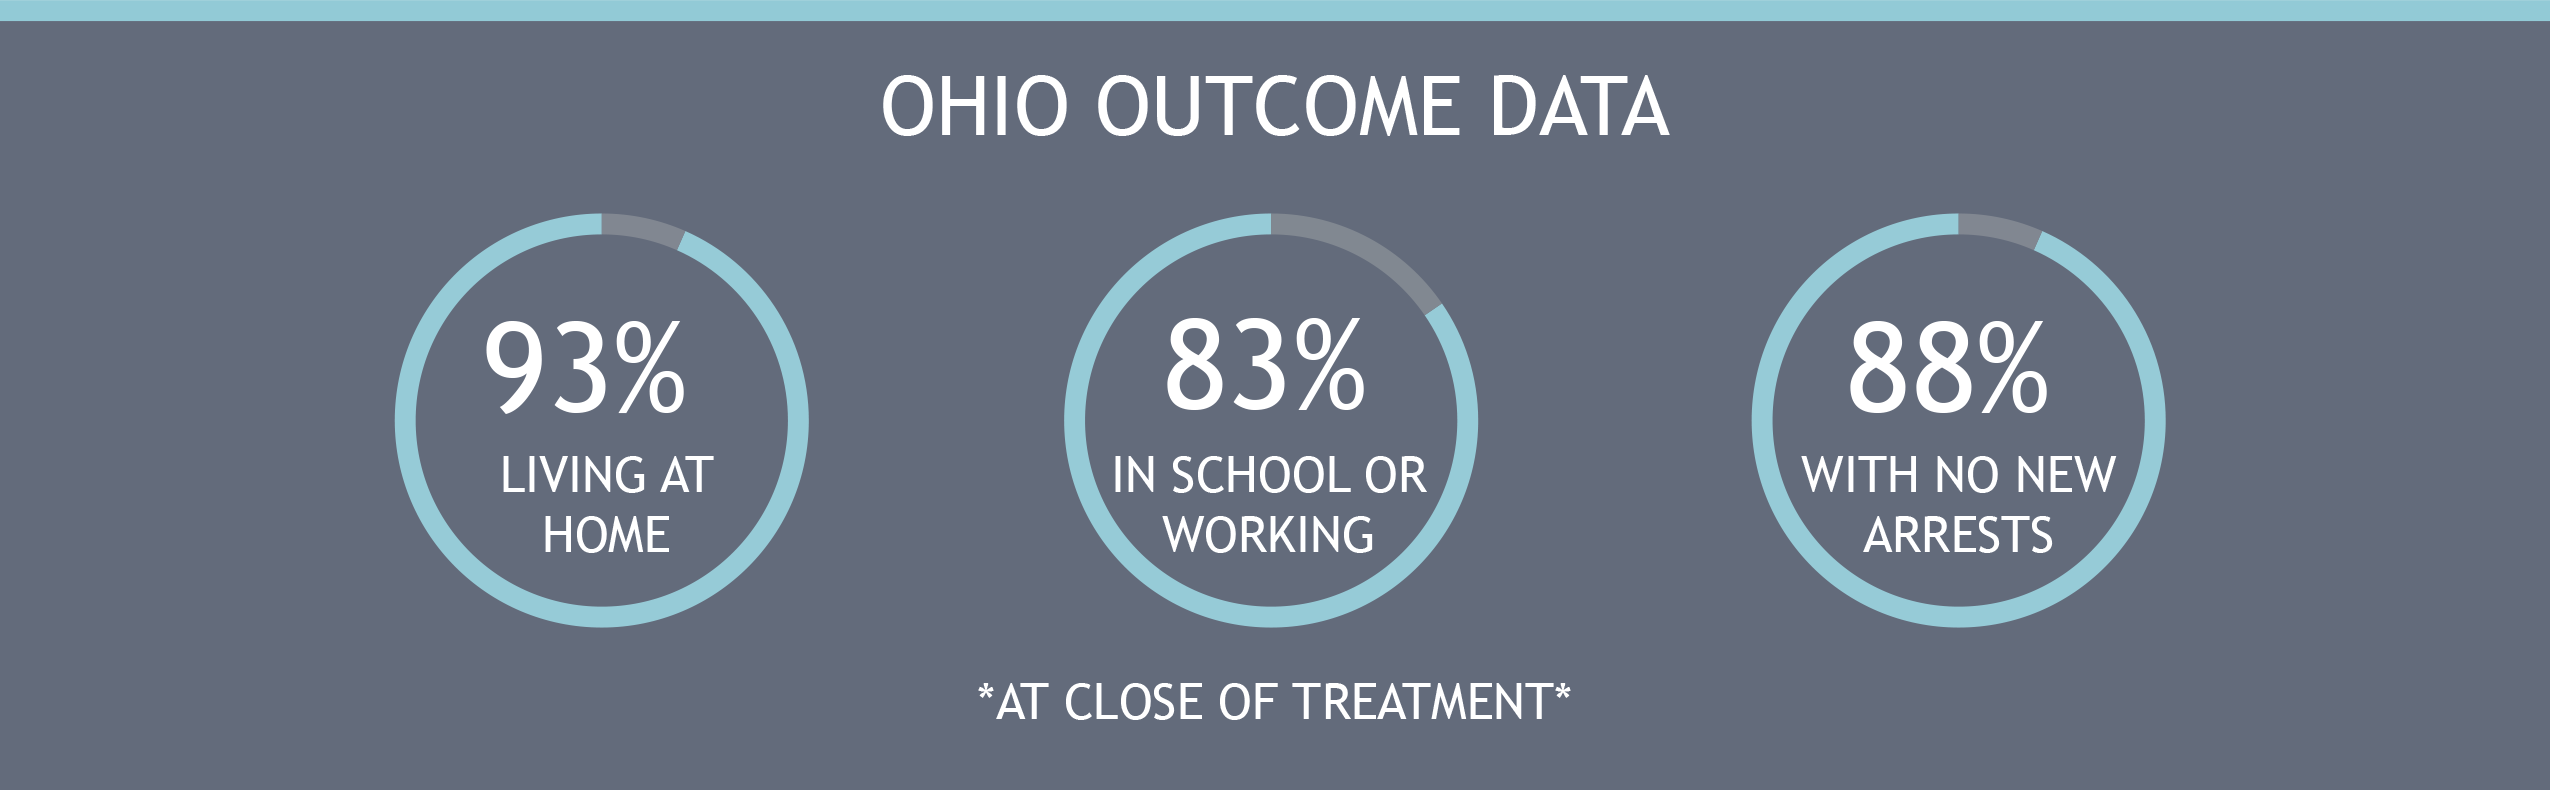 Ohio Outcome Data -1